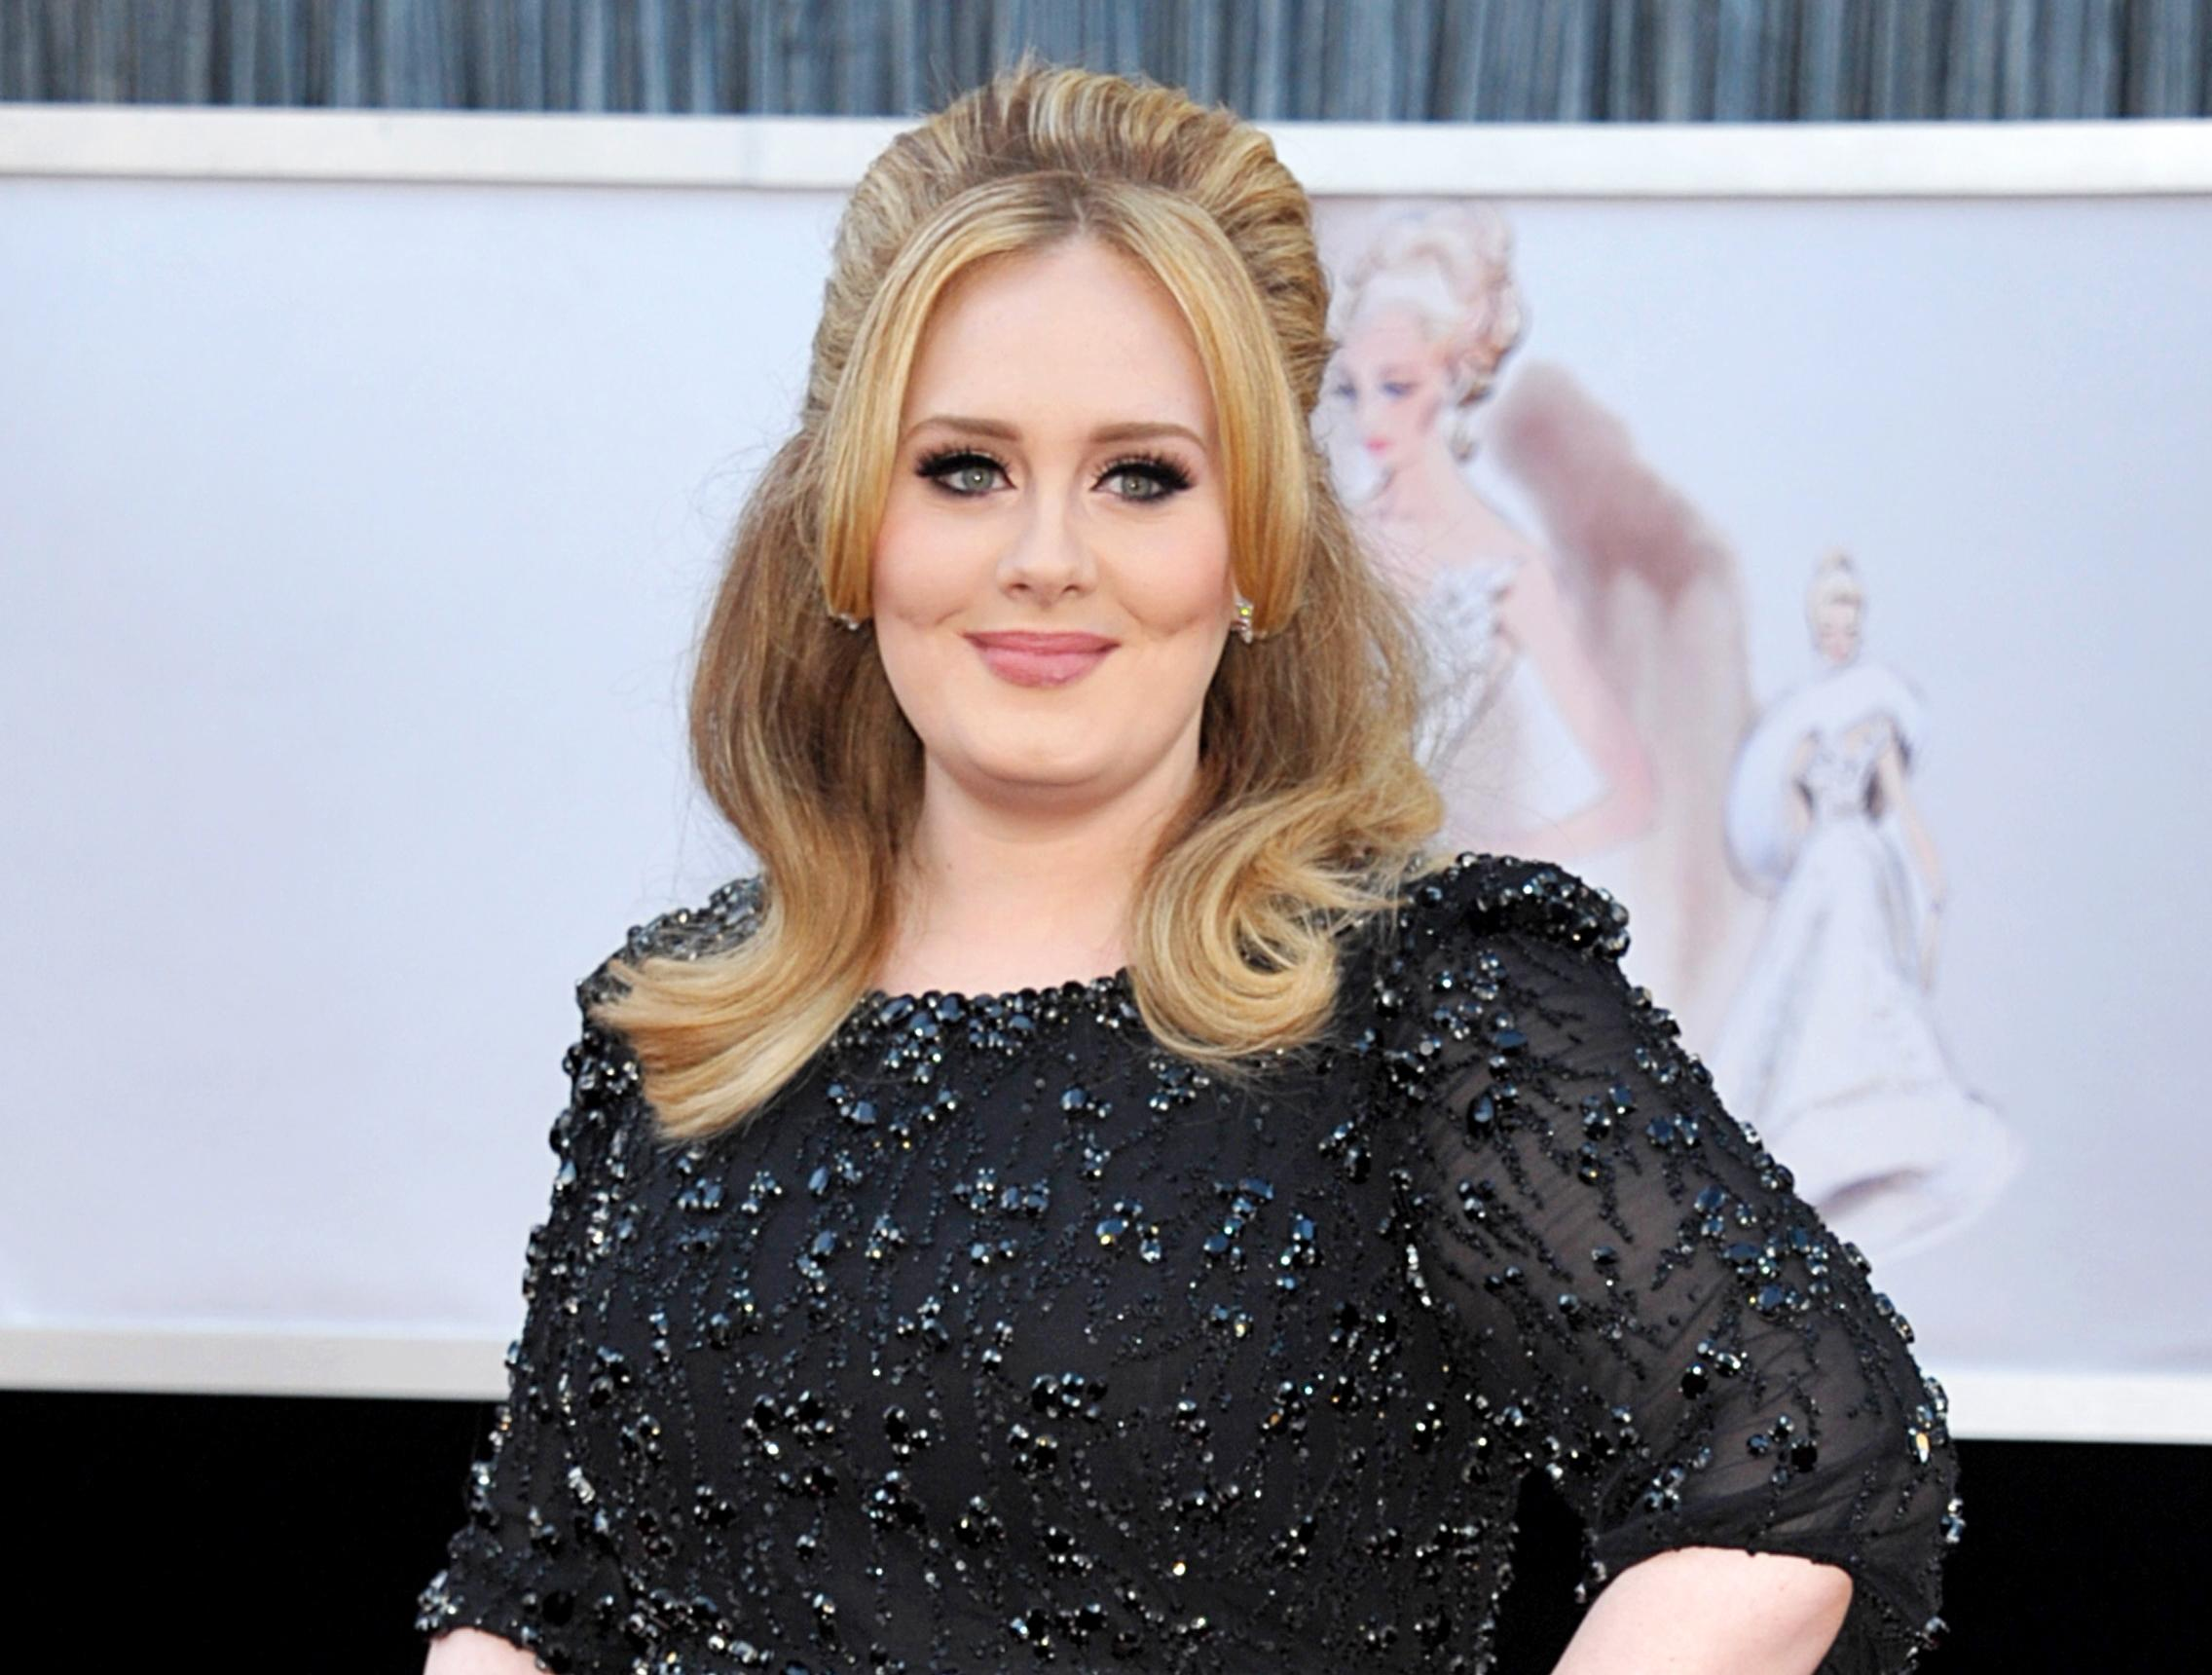 Adele announces first tour in five years for new album '25'